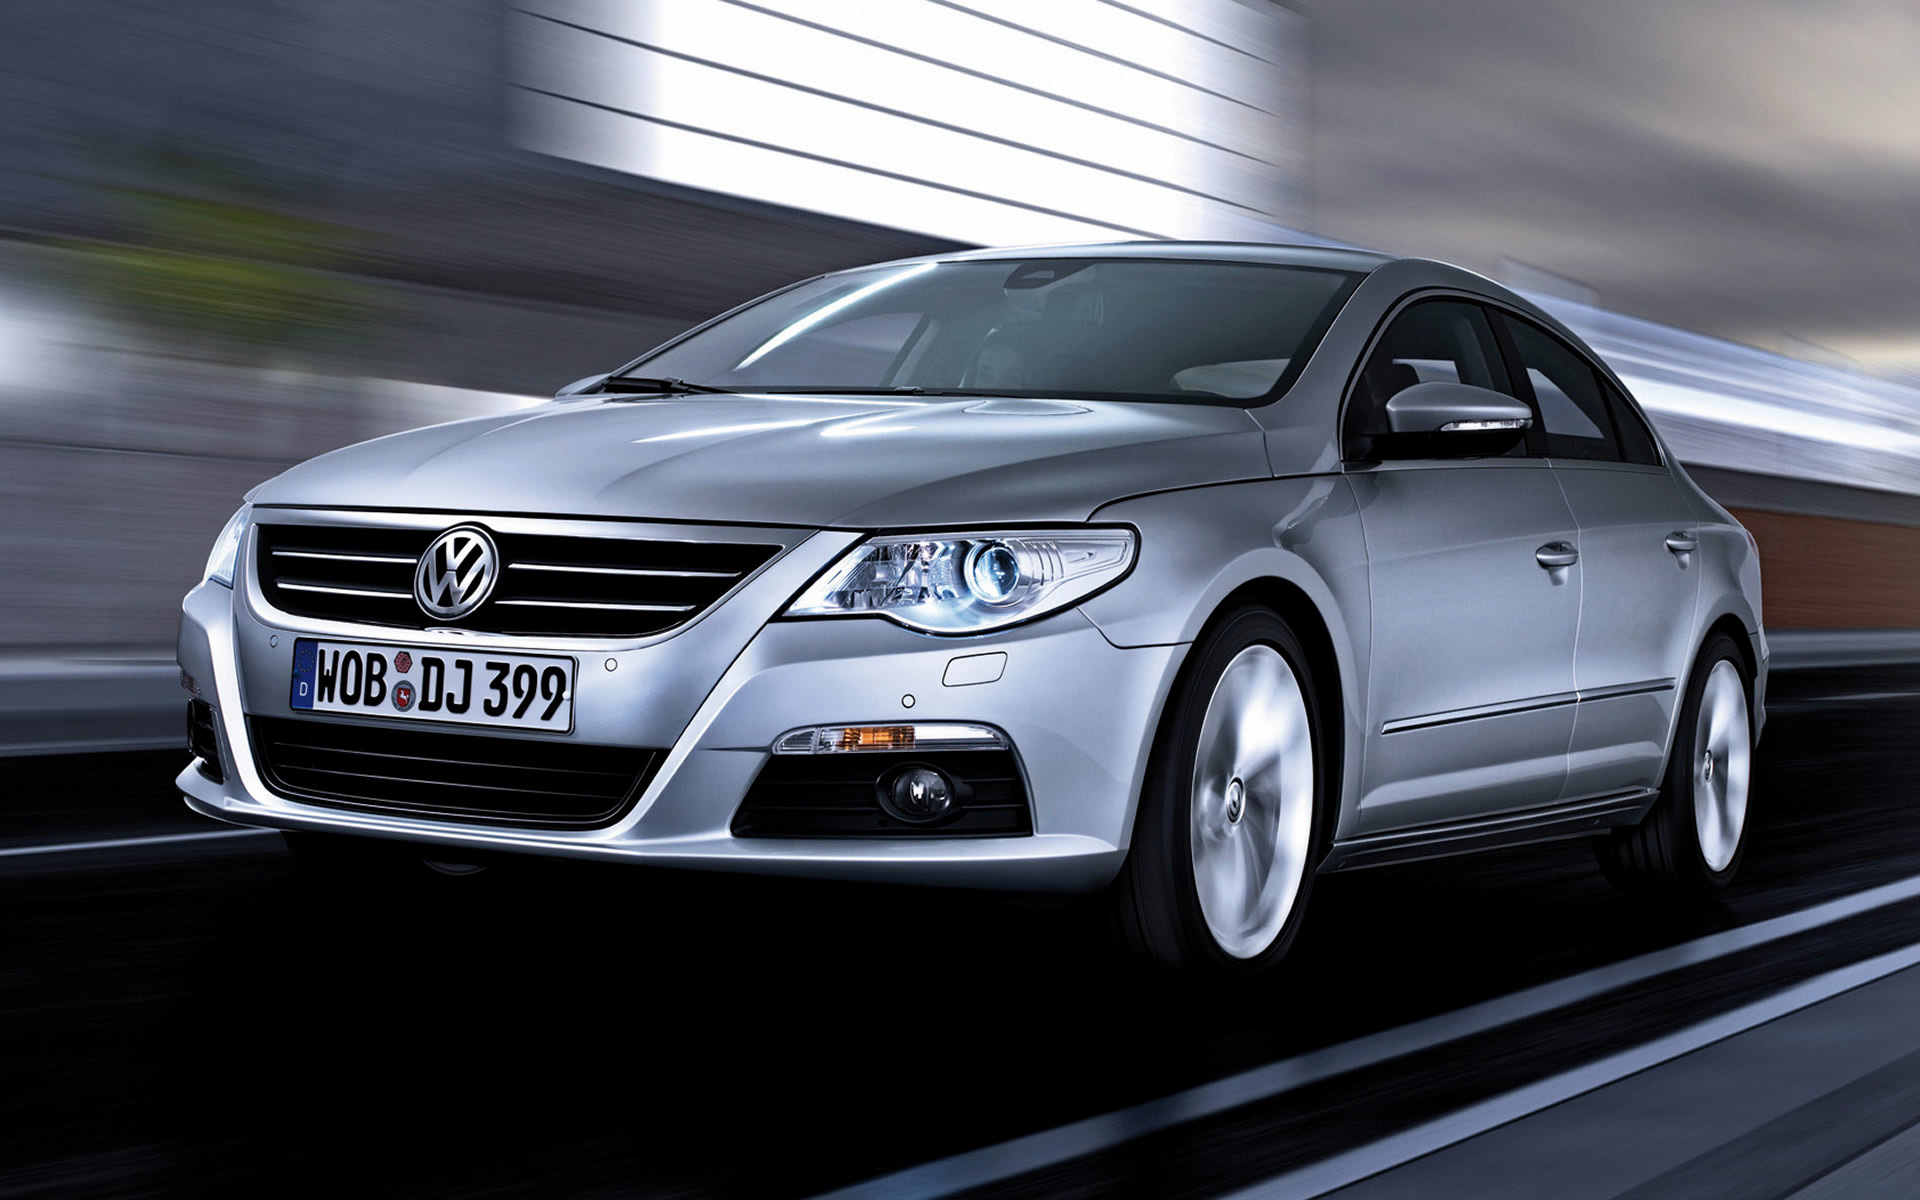 2008 Volkswagen Passat Cc Wallpapers And Hd Images Car Pixel